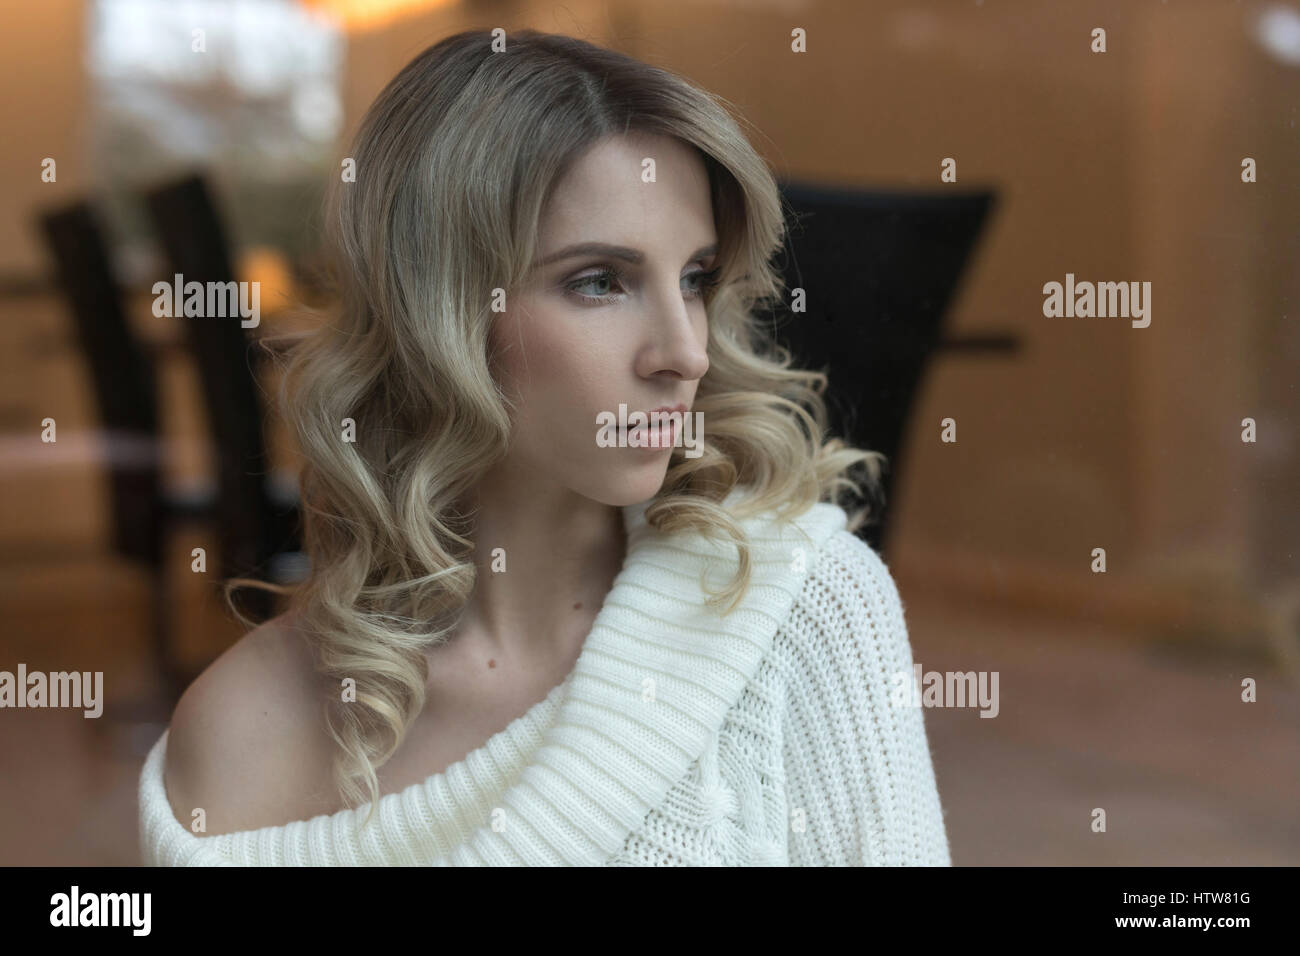 Portrait of a blond woman in the dining room - Stock Image